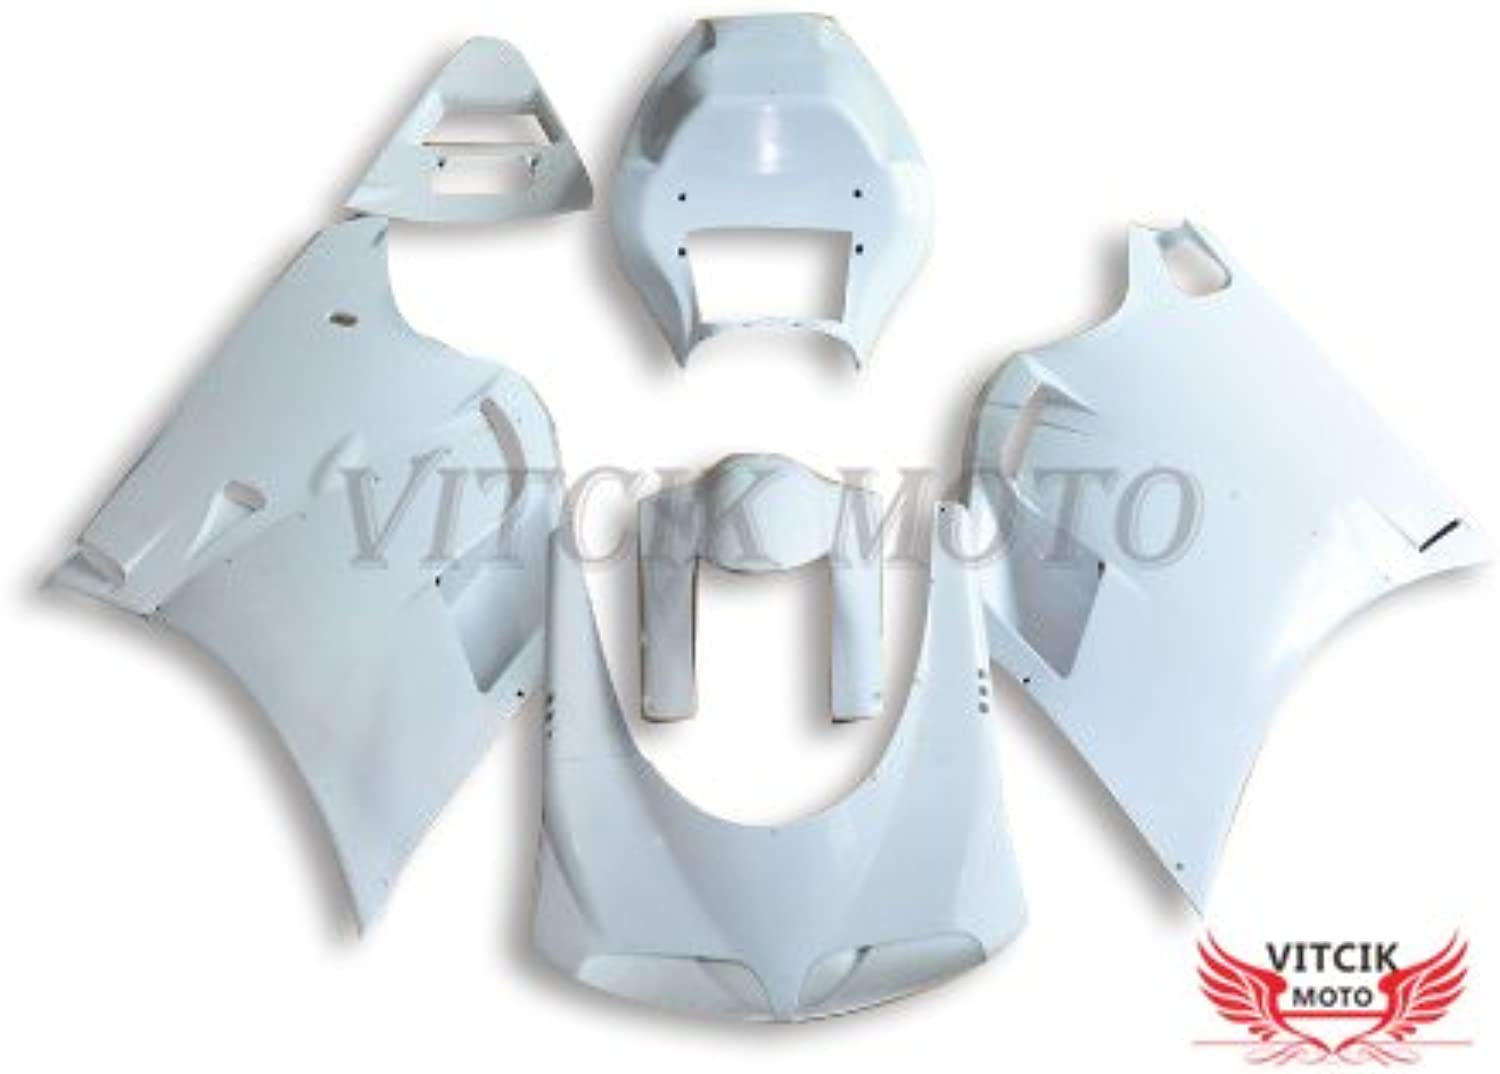 VITCIK (Fairing Kits Fit for Ducati 996 748 916 998 Biposto 1996 1997 1998 1999 2000 2001 2002) Plastic ABS Injection Mold Complete Motorcycle Body Aftermarket Bodywork Frame (Unpainted) ABB1